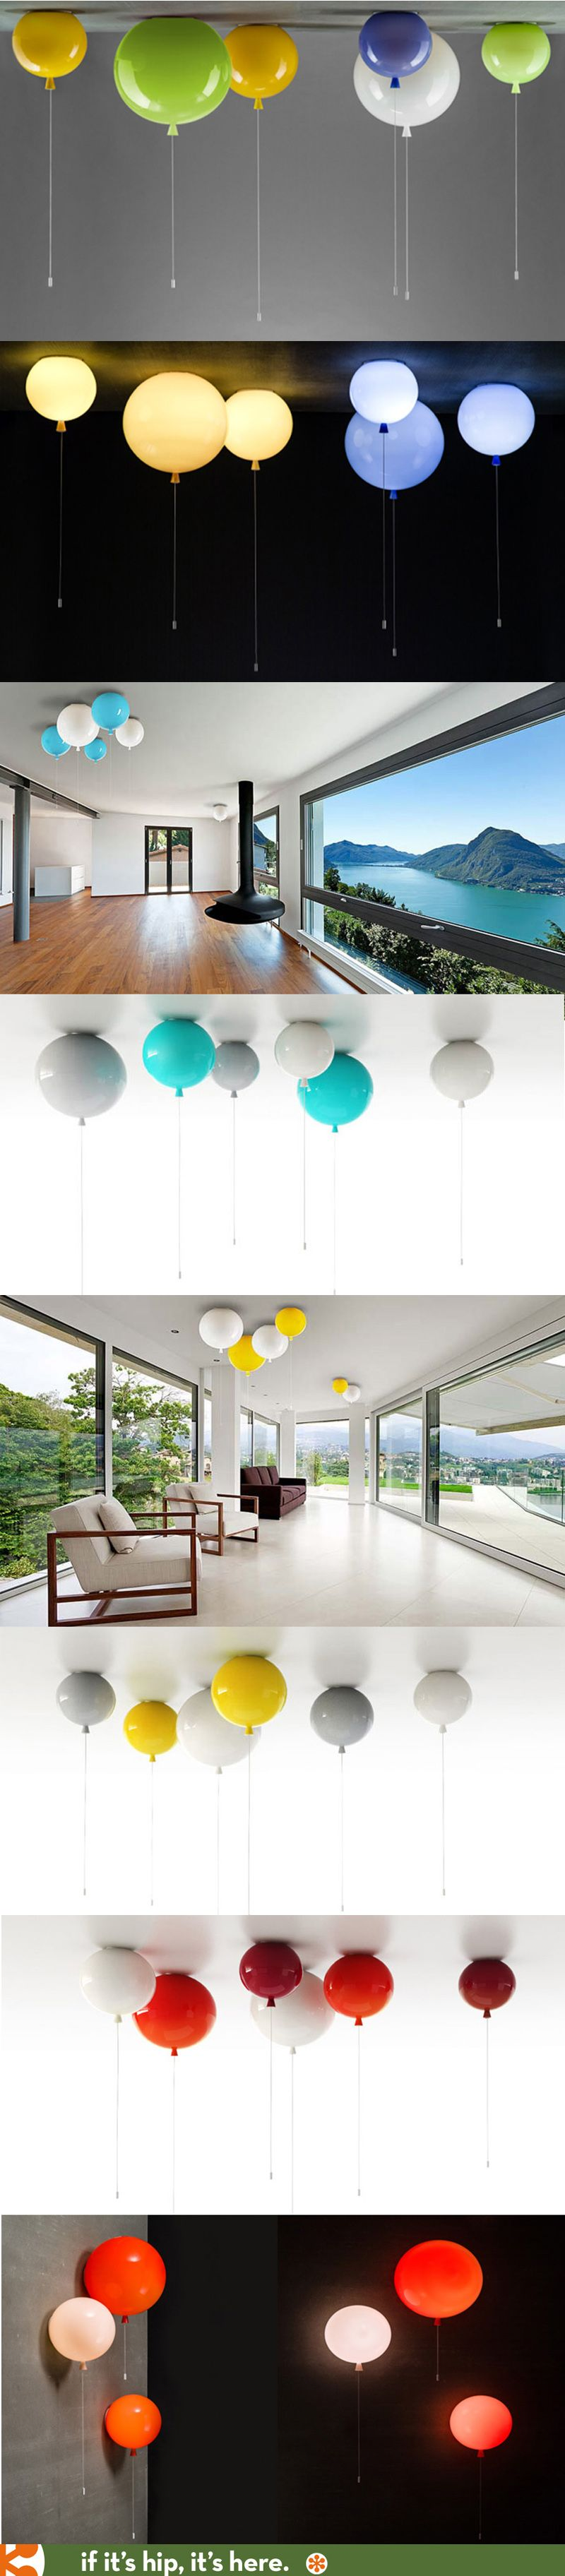 glass balloon ceiling and wall lamps add a festive touch pinterest beleuchtung lampen und. Black Bedroom Furniture Sets. Home Design Ideas